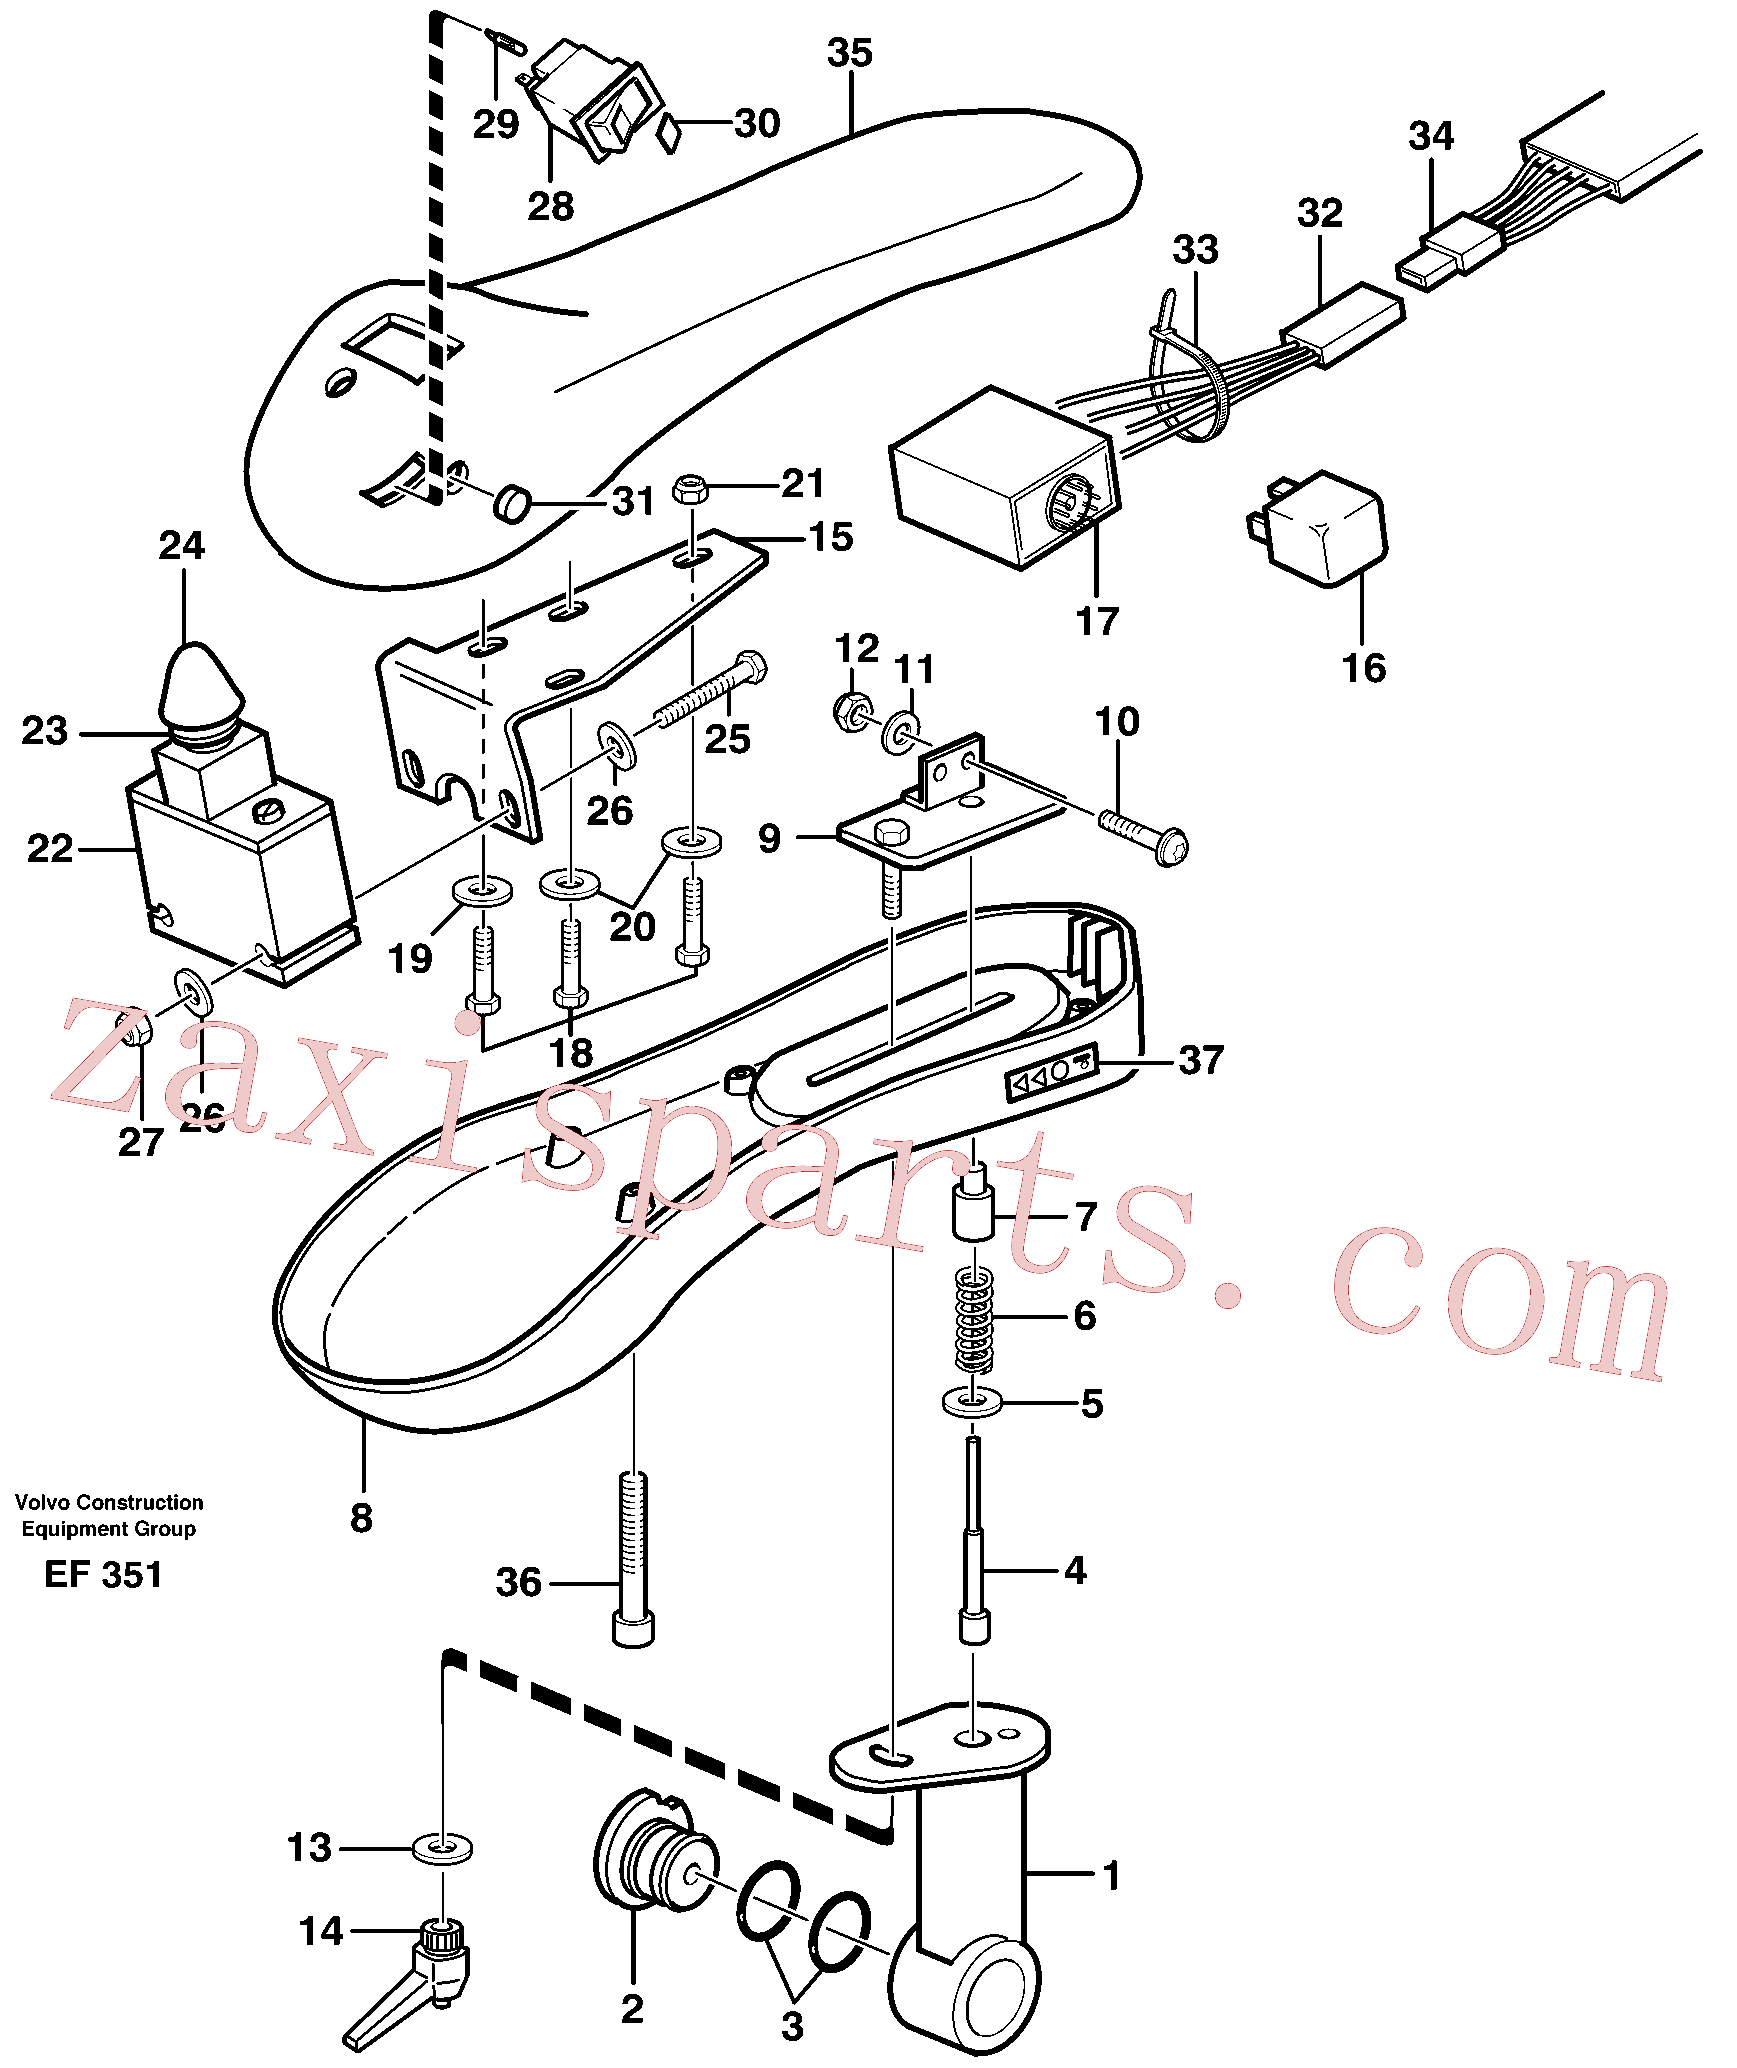 VOE969440 for Volvo Arm rest.(EF351 assembly)